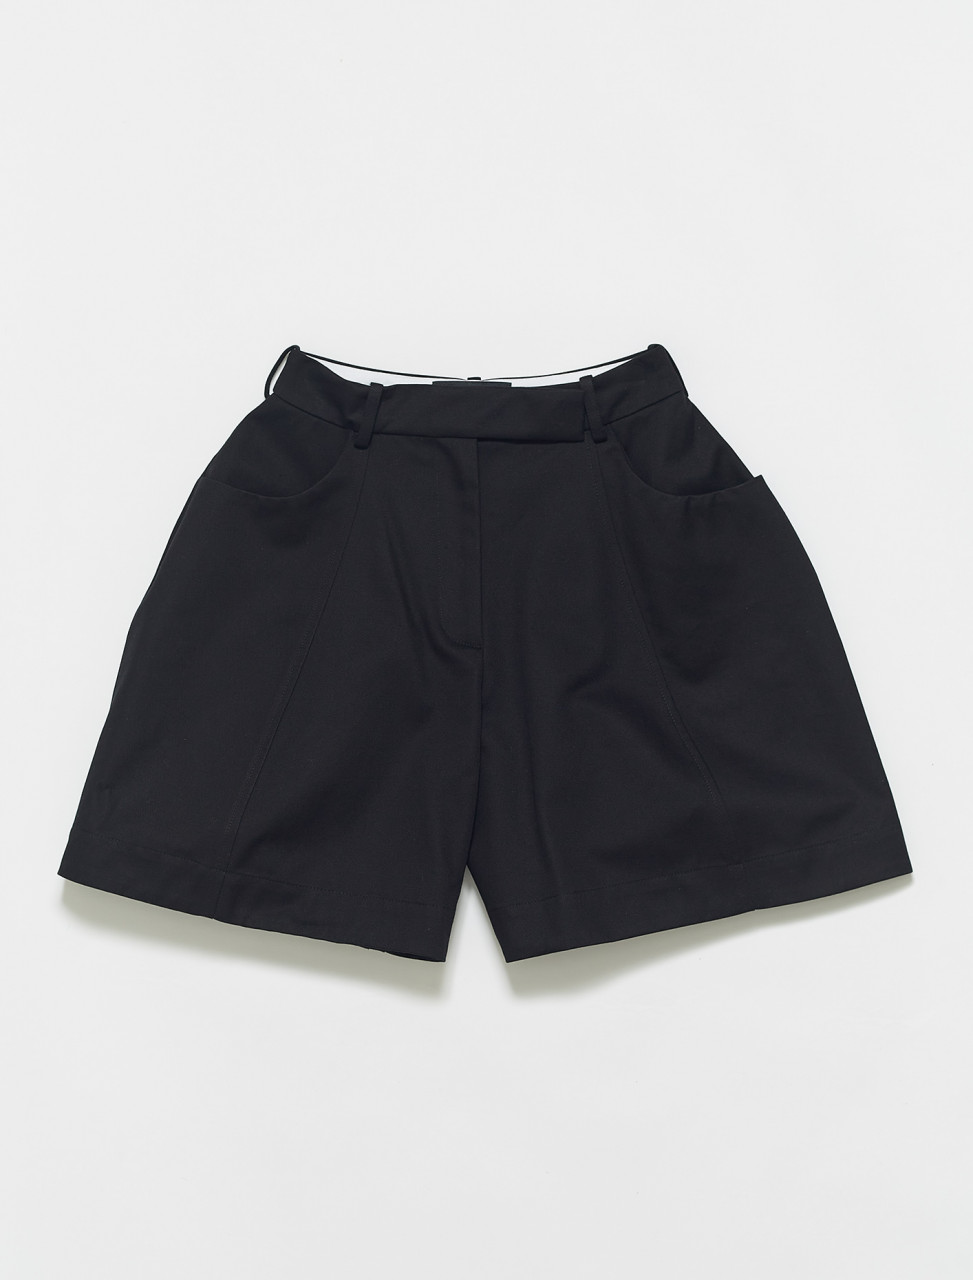 4010-0410 SIMONE ROCHA SCULPTED SHORTS